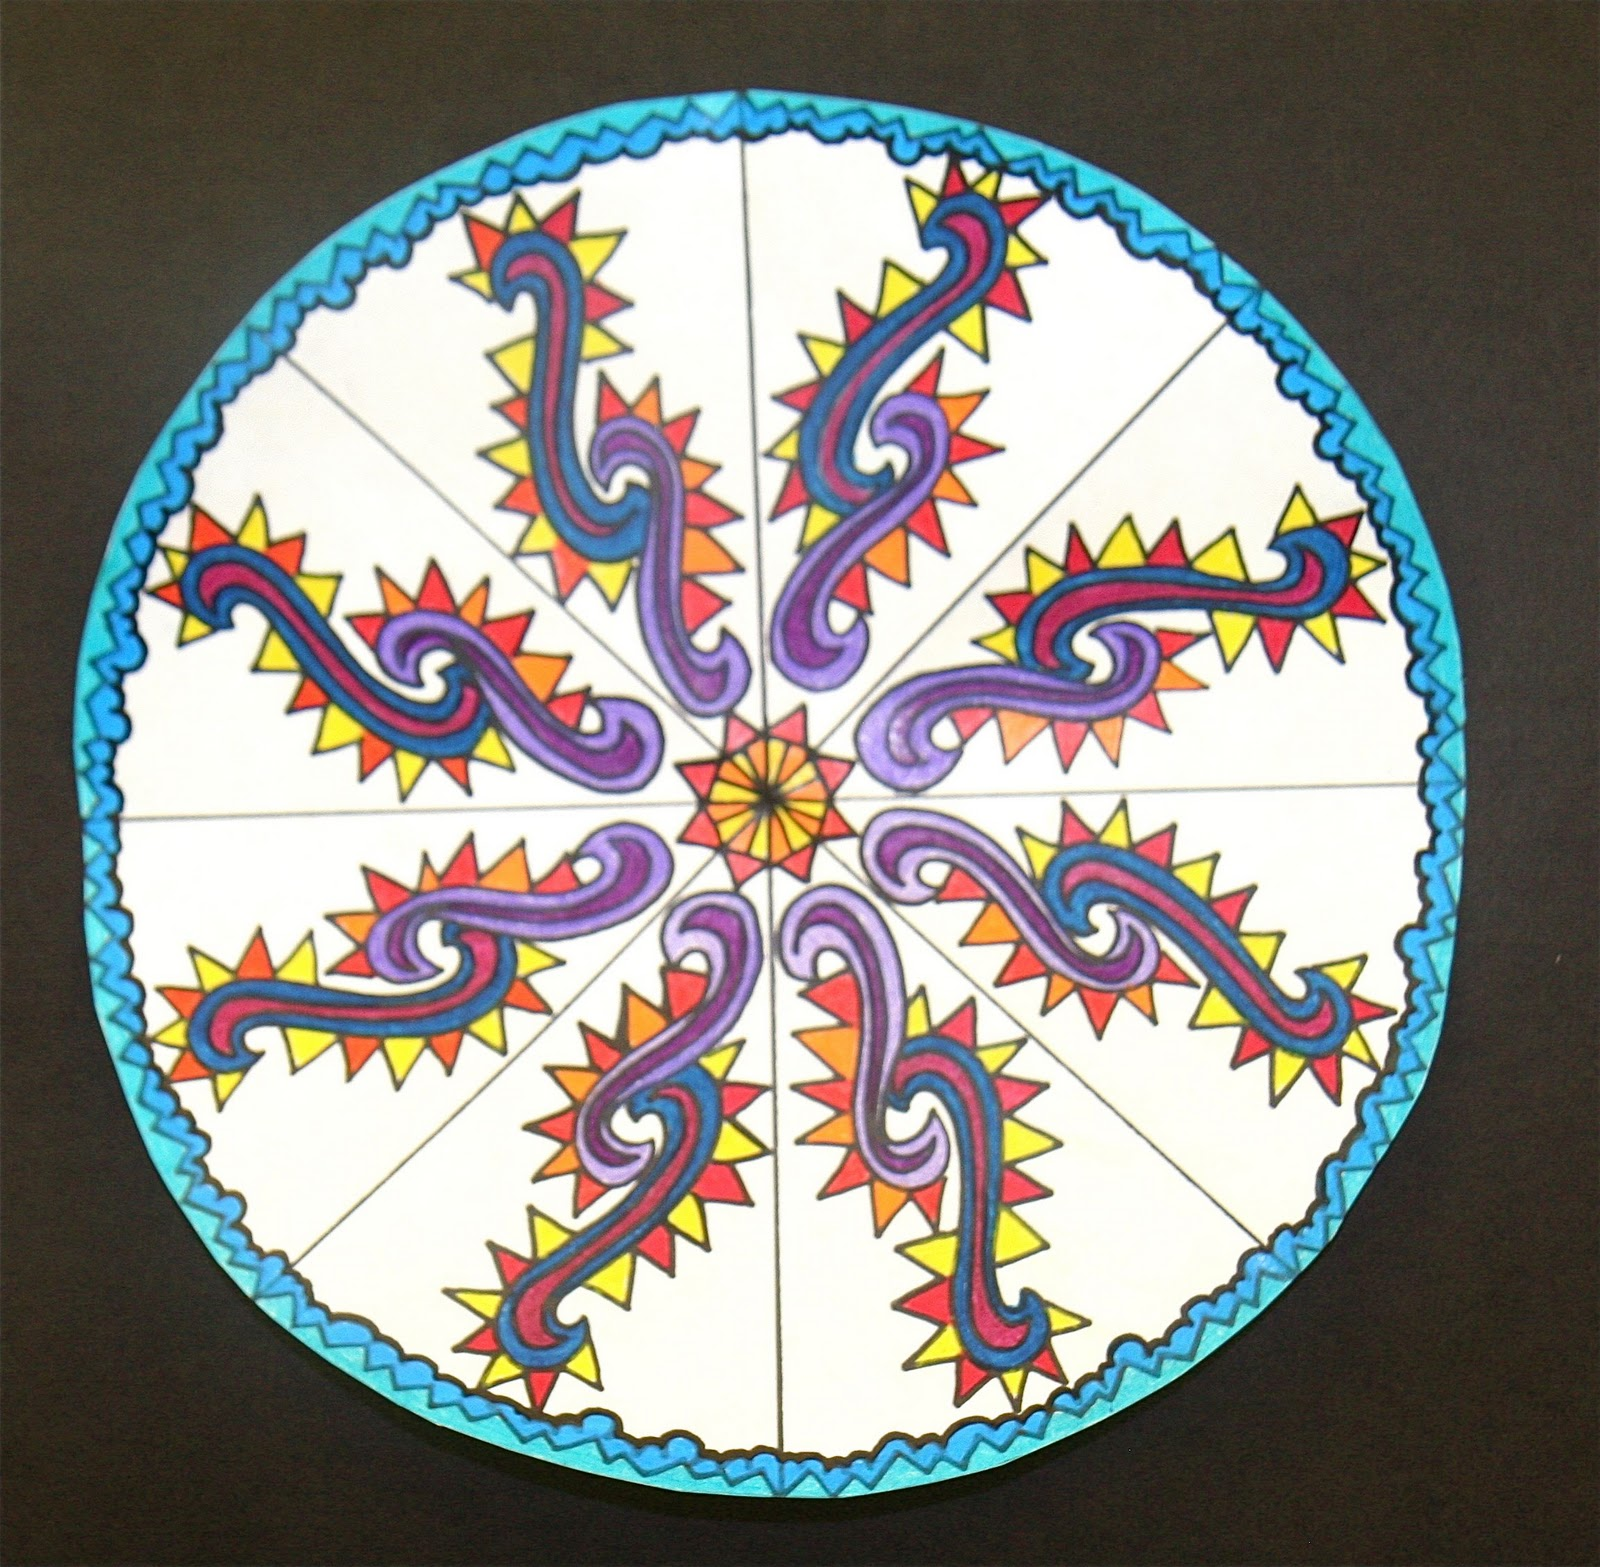 Splish Splash Splatter Rotational Symmetry